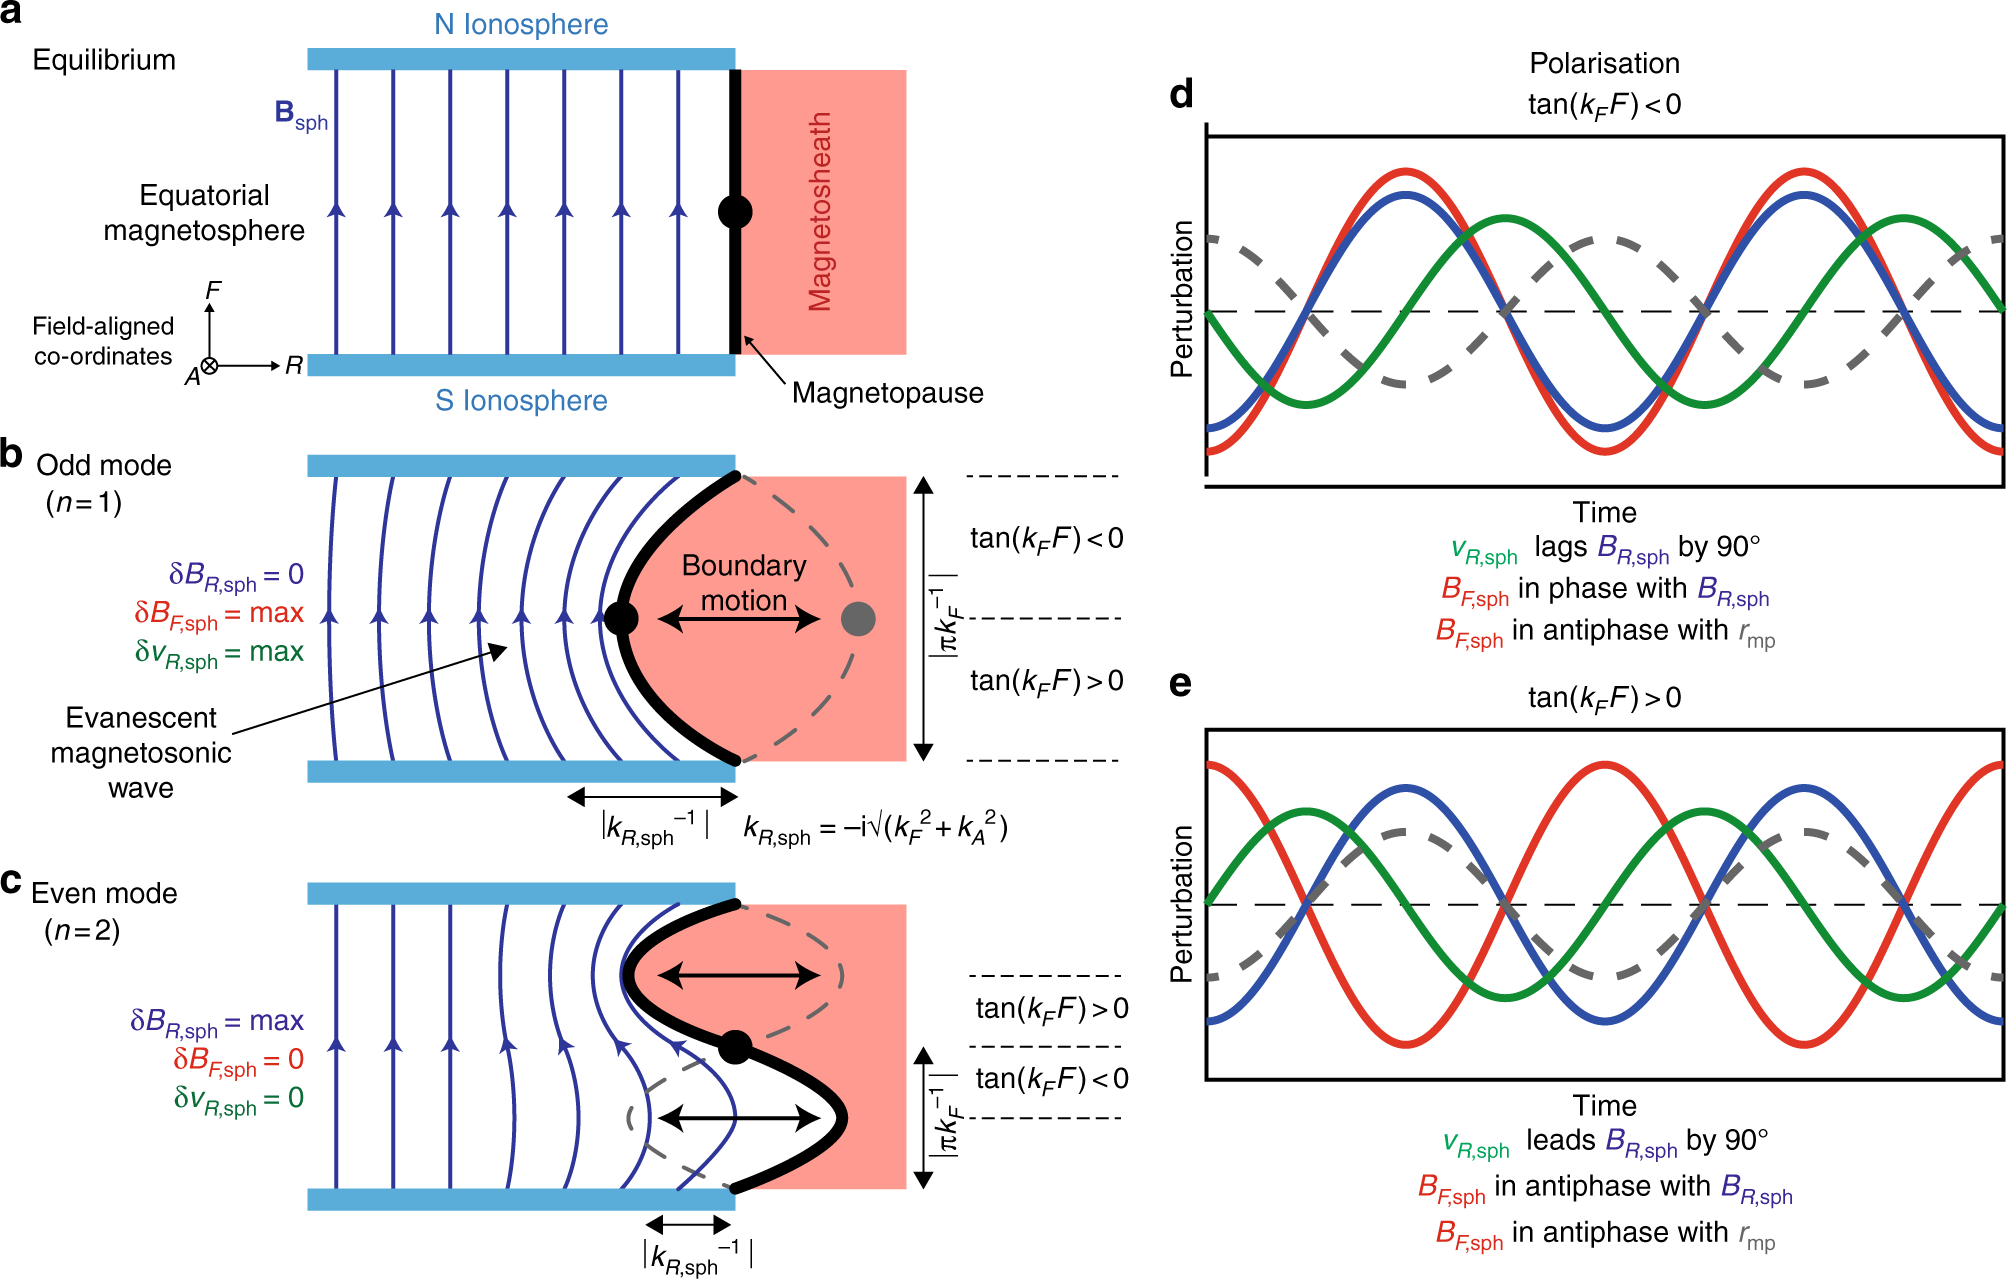 Direct observations of a surface eigenmode of the dayside